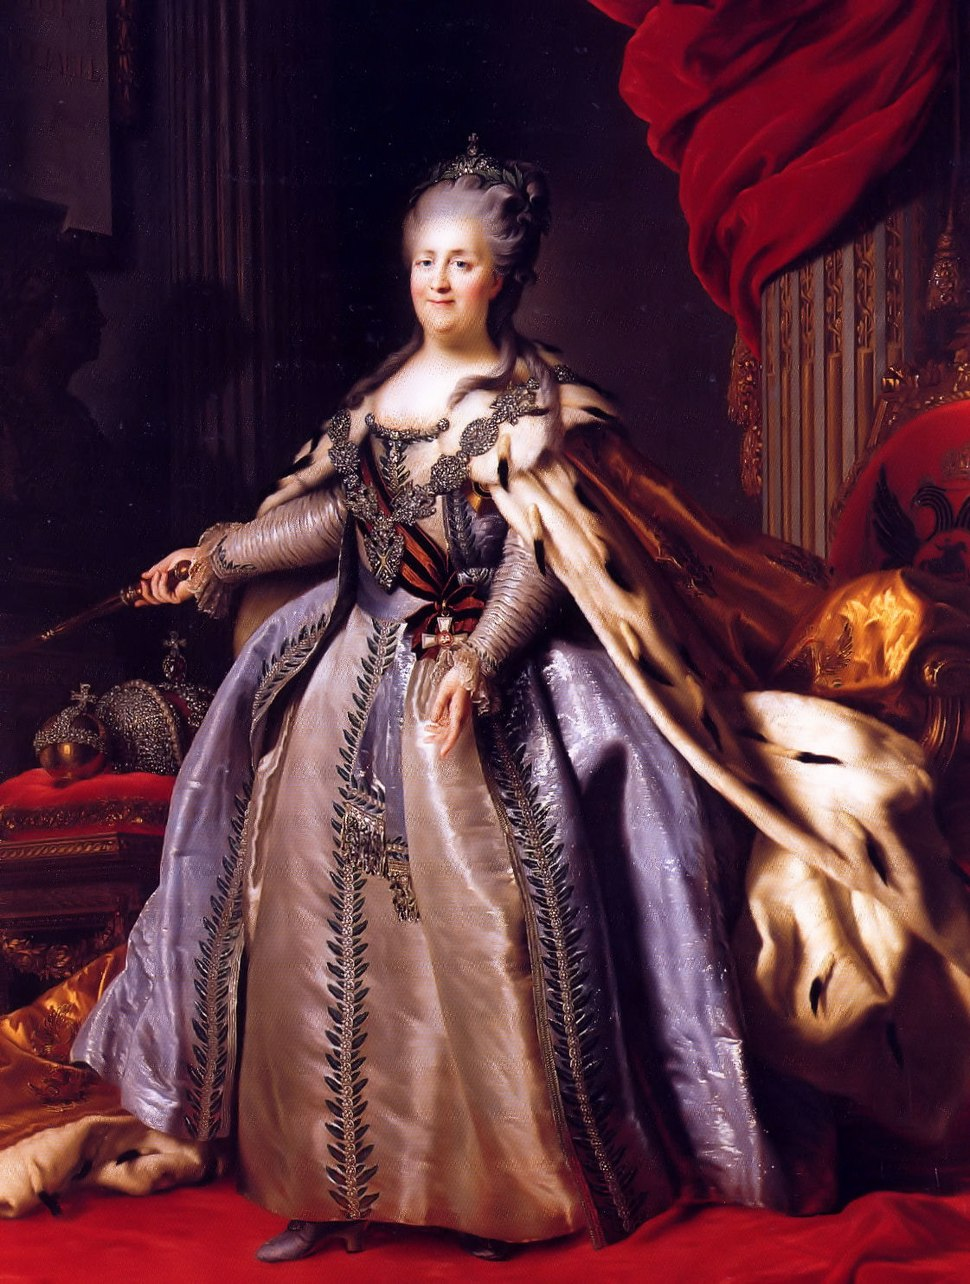 Catherine II by F.Rokotov after Roslin (1780s, Hermitage) 2